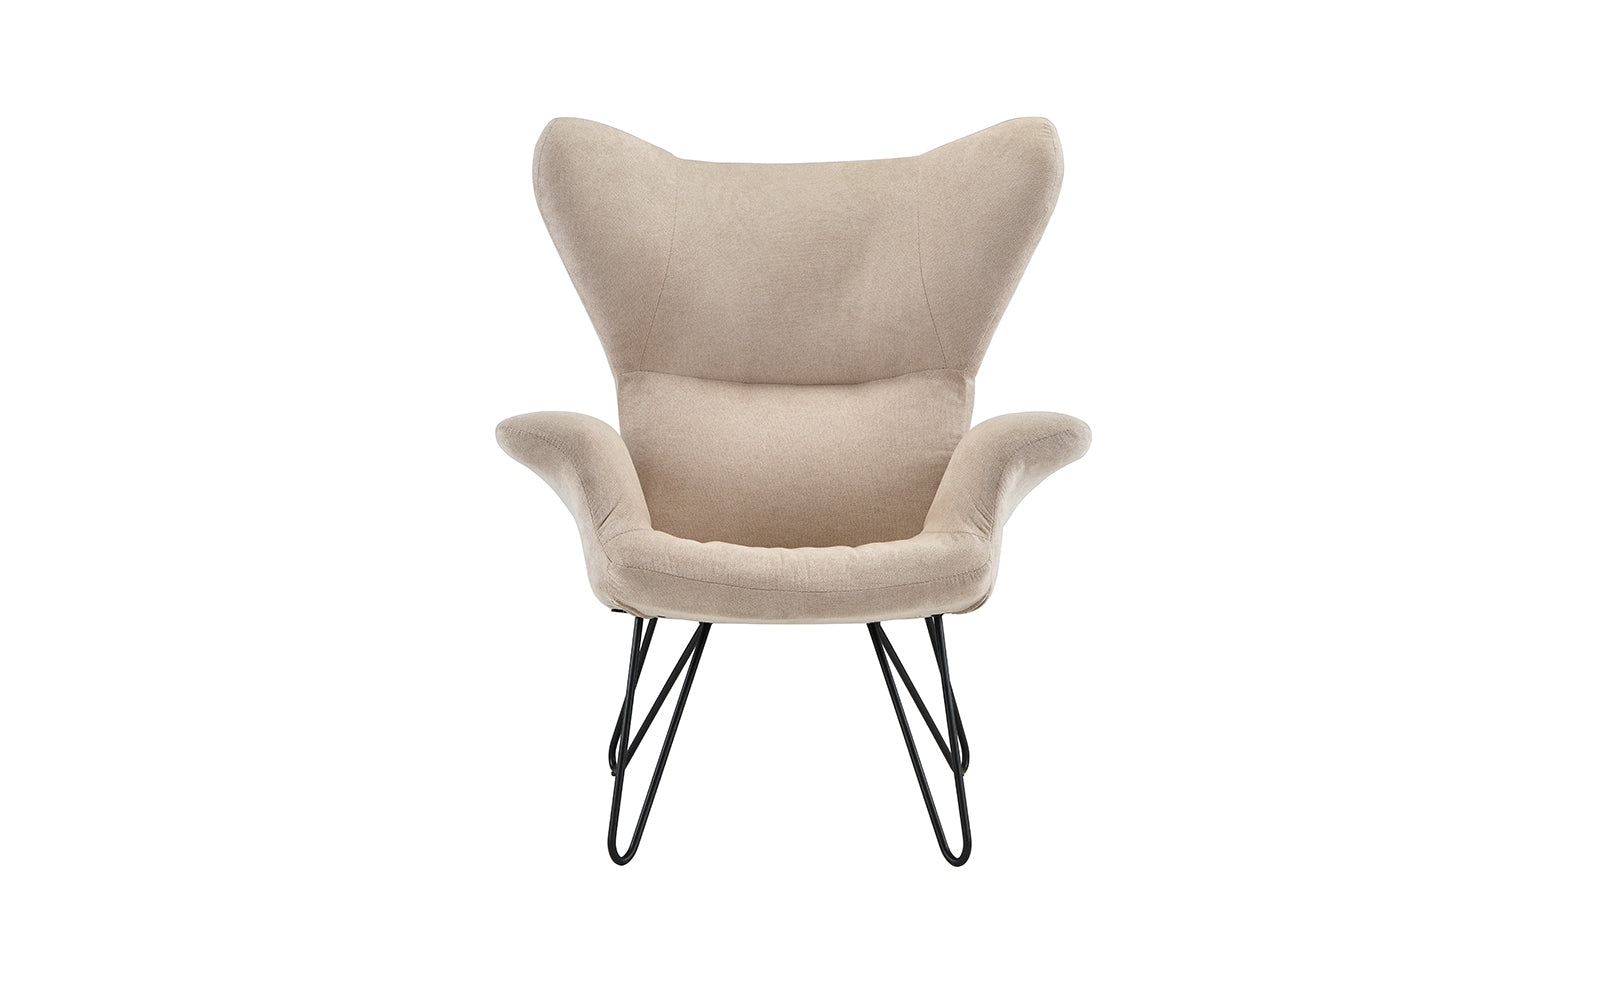 Super Leyla Contemporary Armchair With Metal Infinity Pin Legs Theyellowbook Wood Chair Design Ideas Theyellowbookinfo